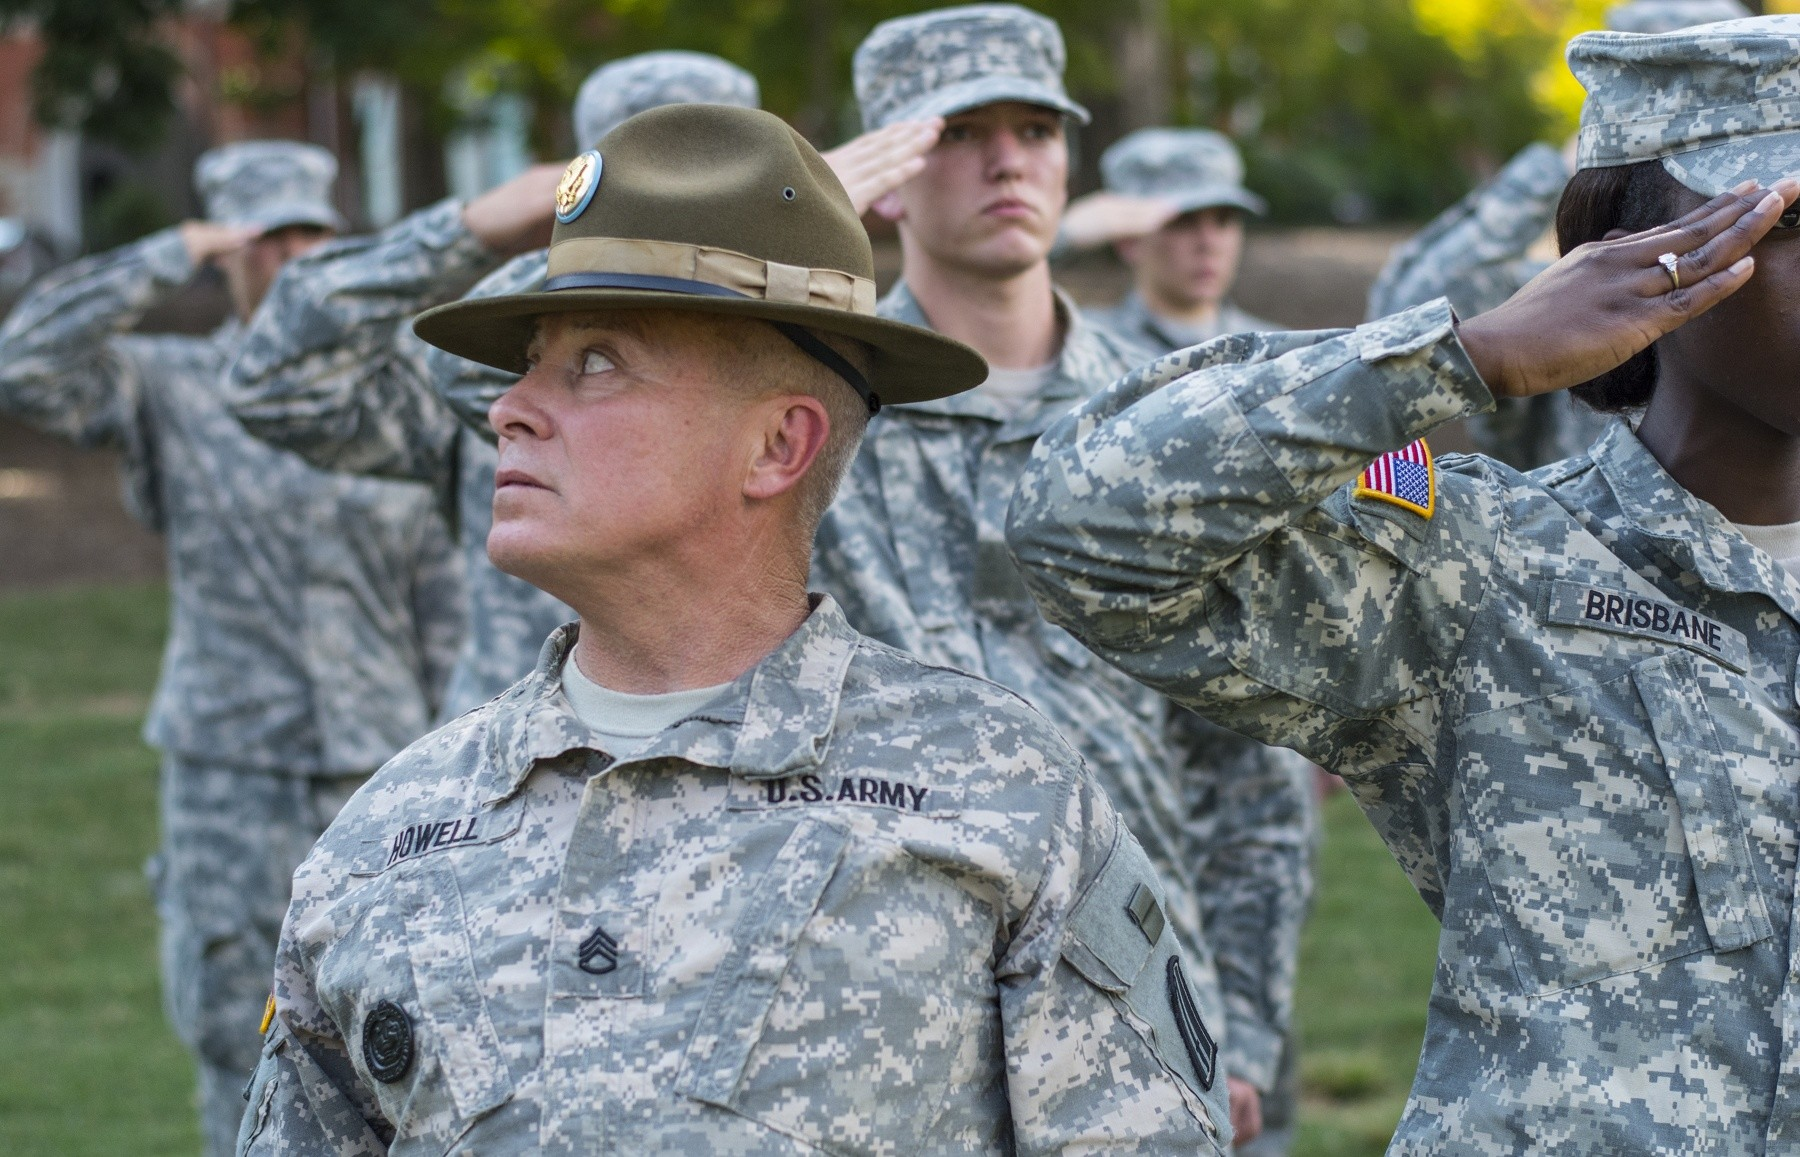 Drill Sergeant Teaches The Salute Article The United